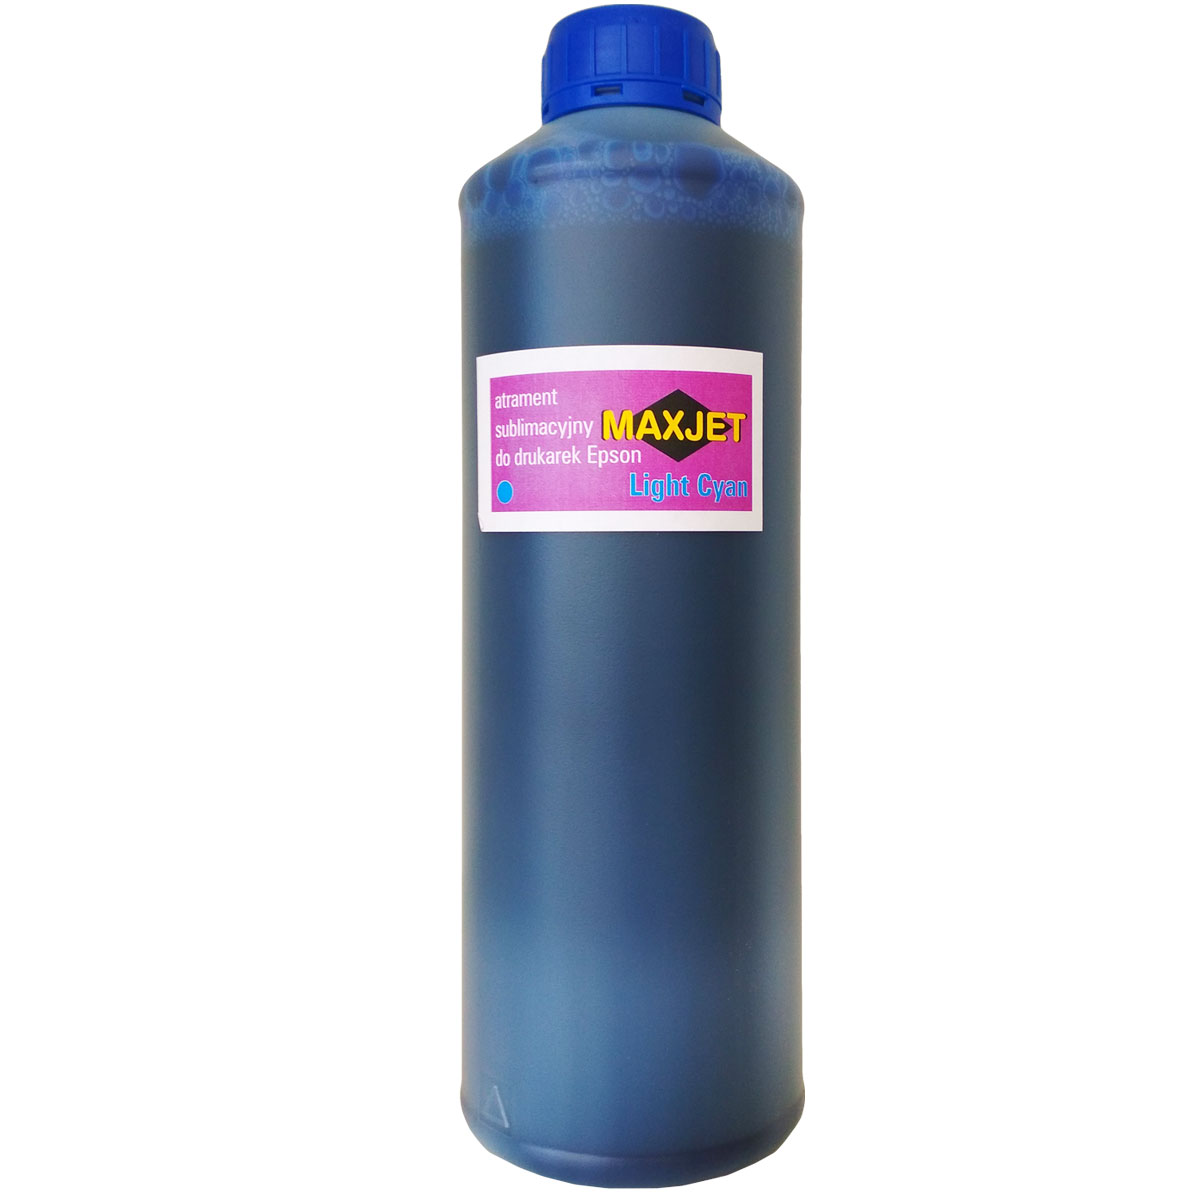 Sublimation ink for Epson printers 1 kg cyan light